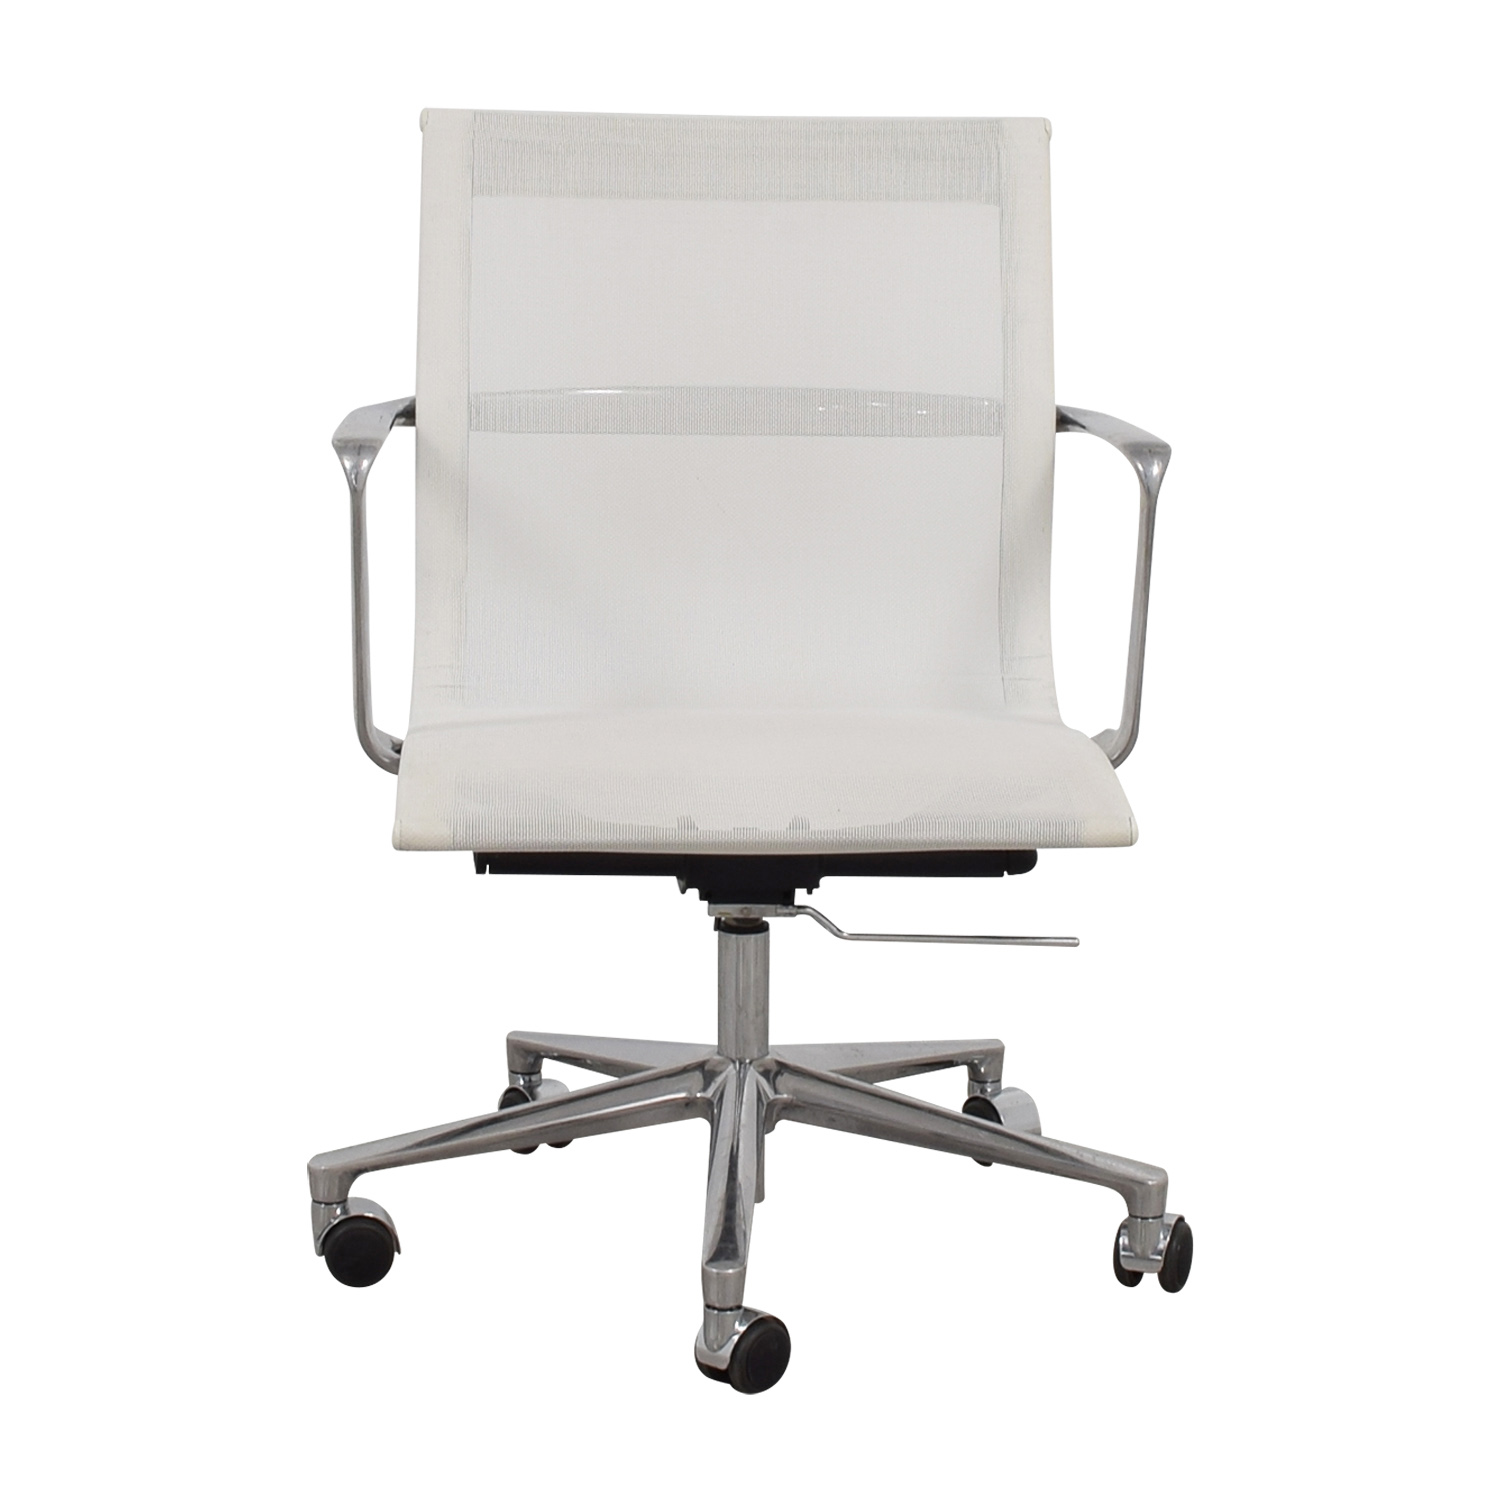 International Catsana Furniture International Catsana Furniture Una White Mesh Chair Home Office Chairs